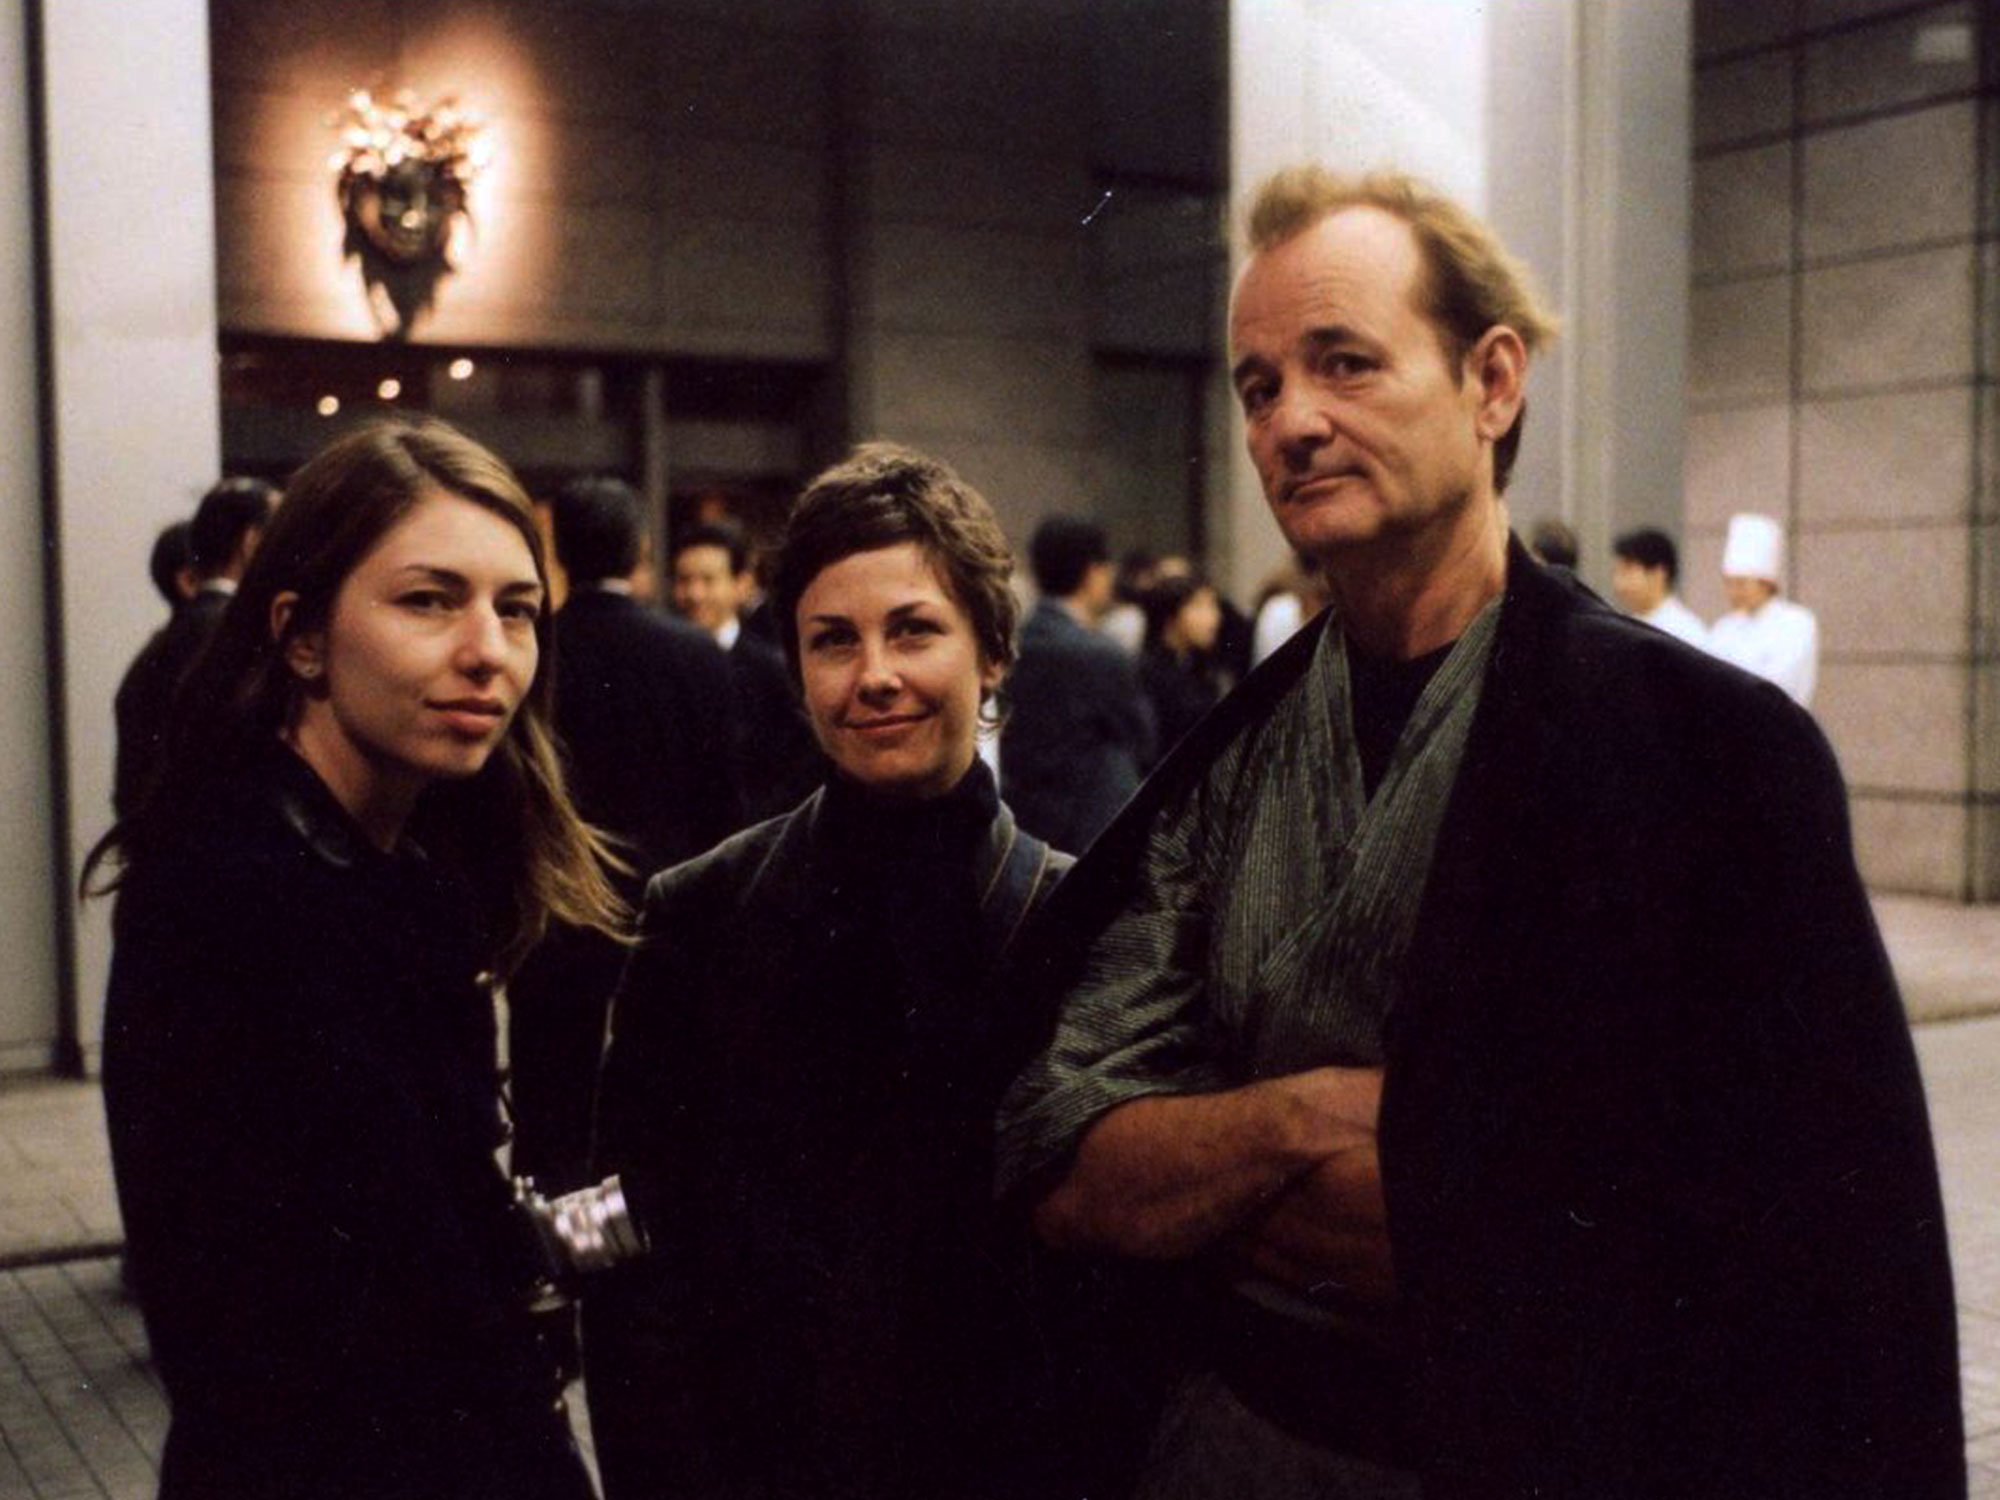 Sofia Coppola on Lost in Translation at 15